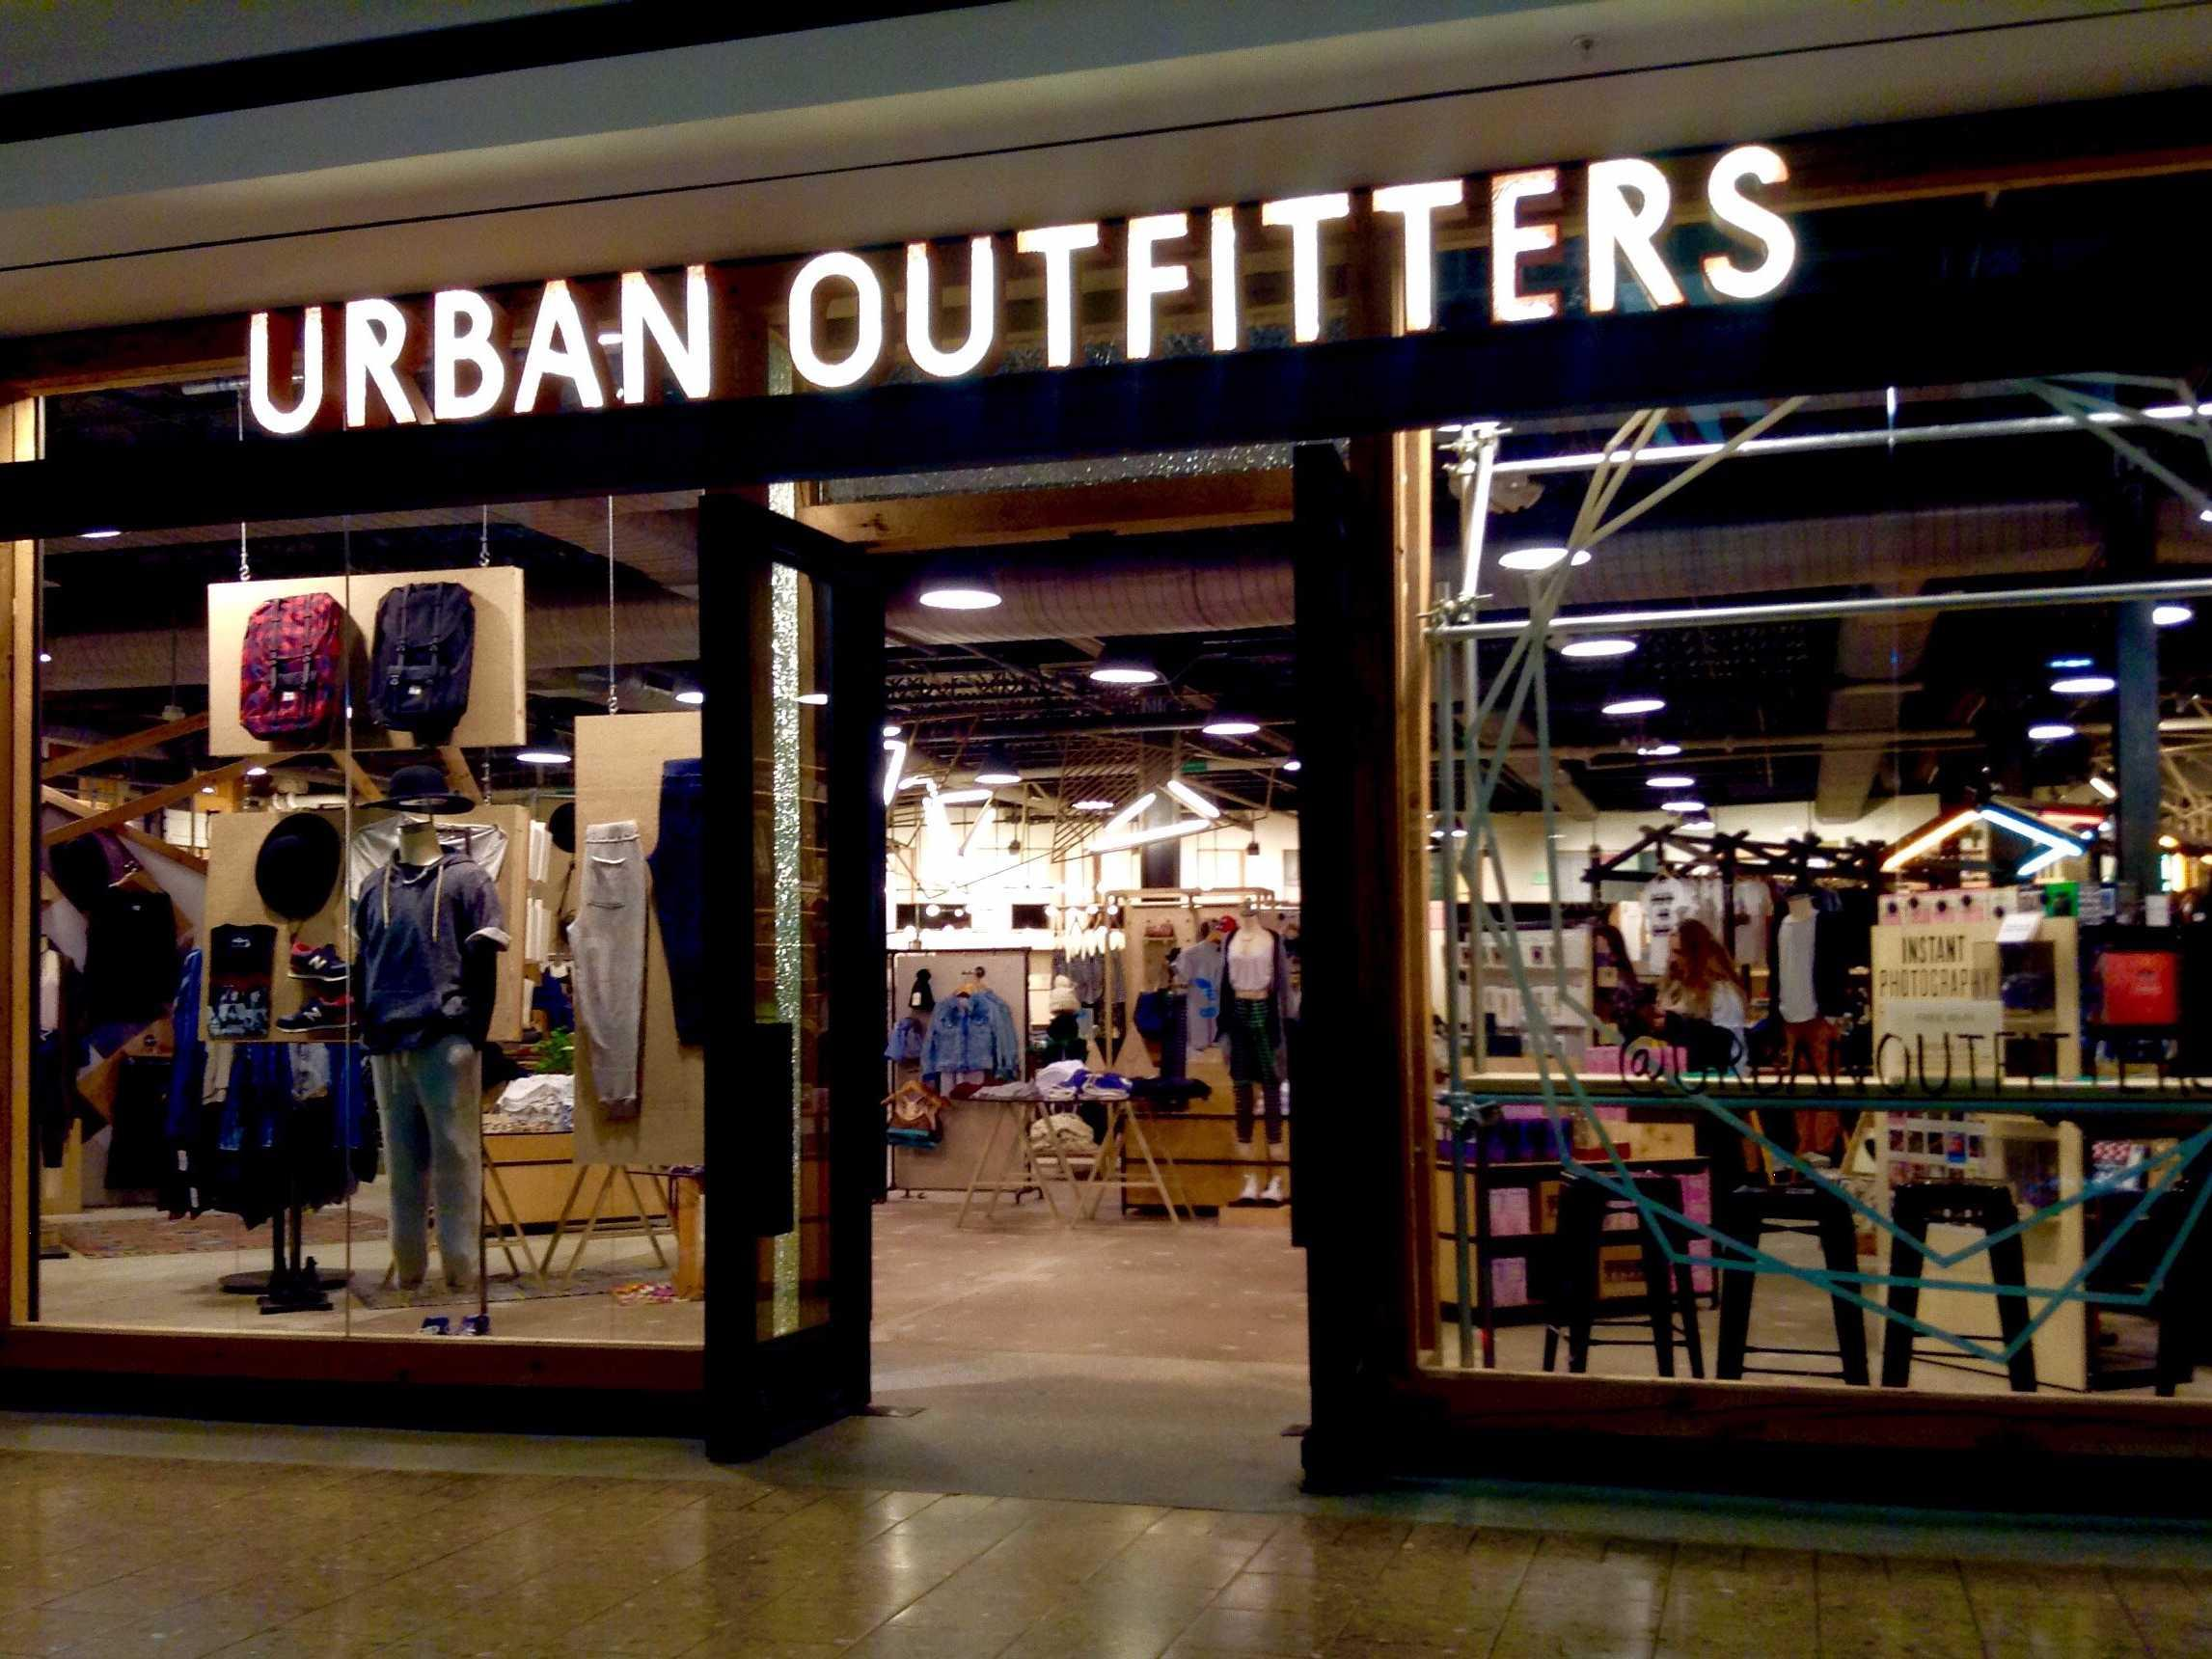 Urban Outfitters is asking employees to work for free